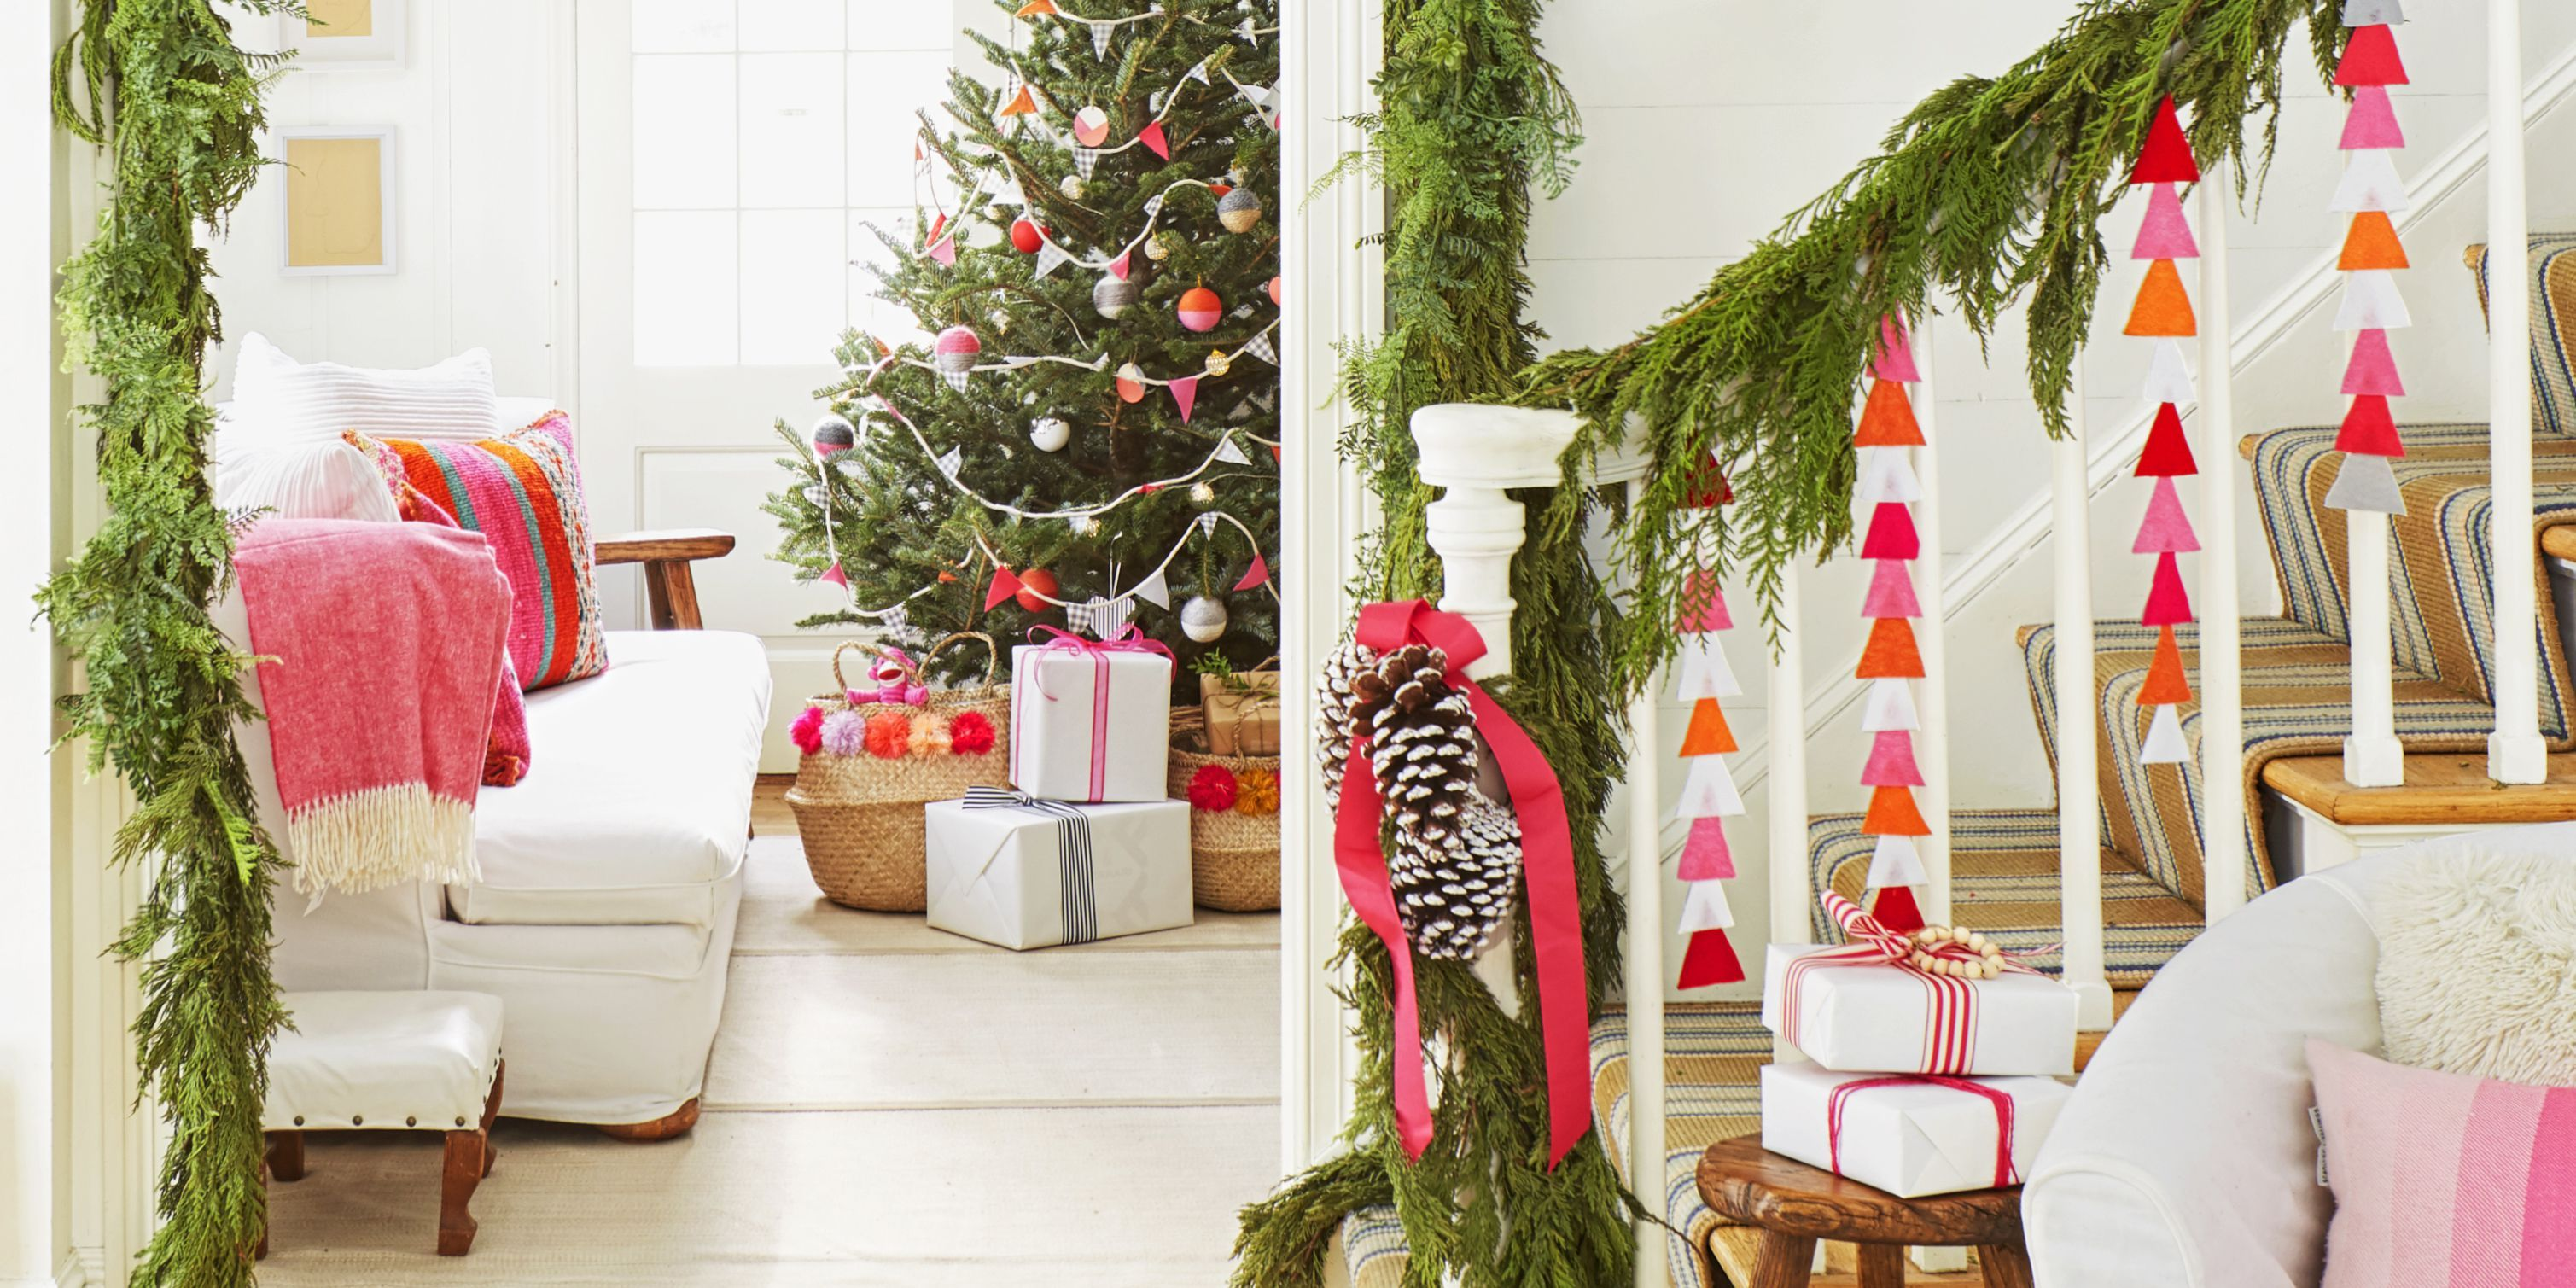 70+ Christmas Decorating Ideas for a Joyful Holiday Home